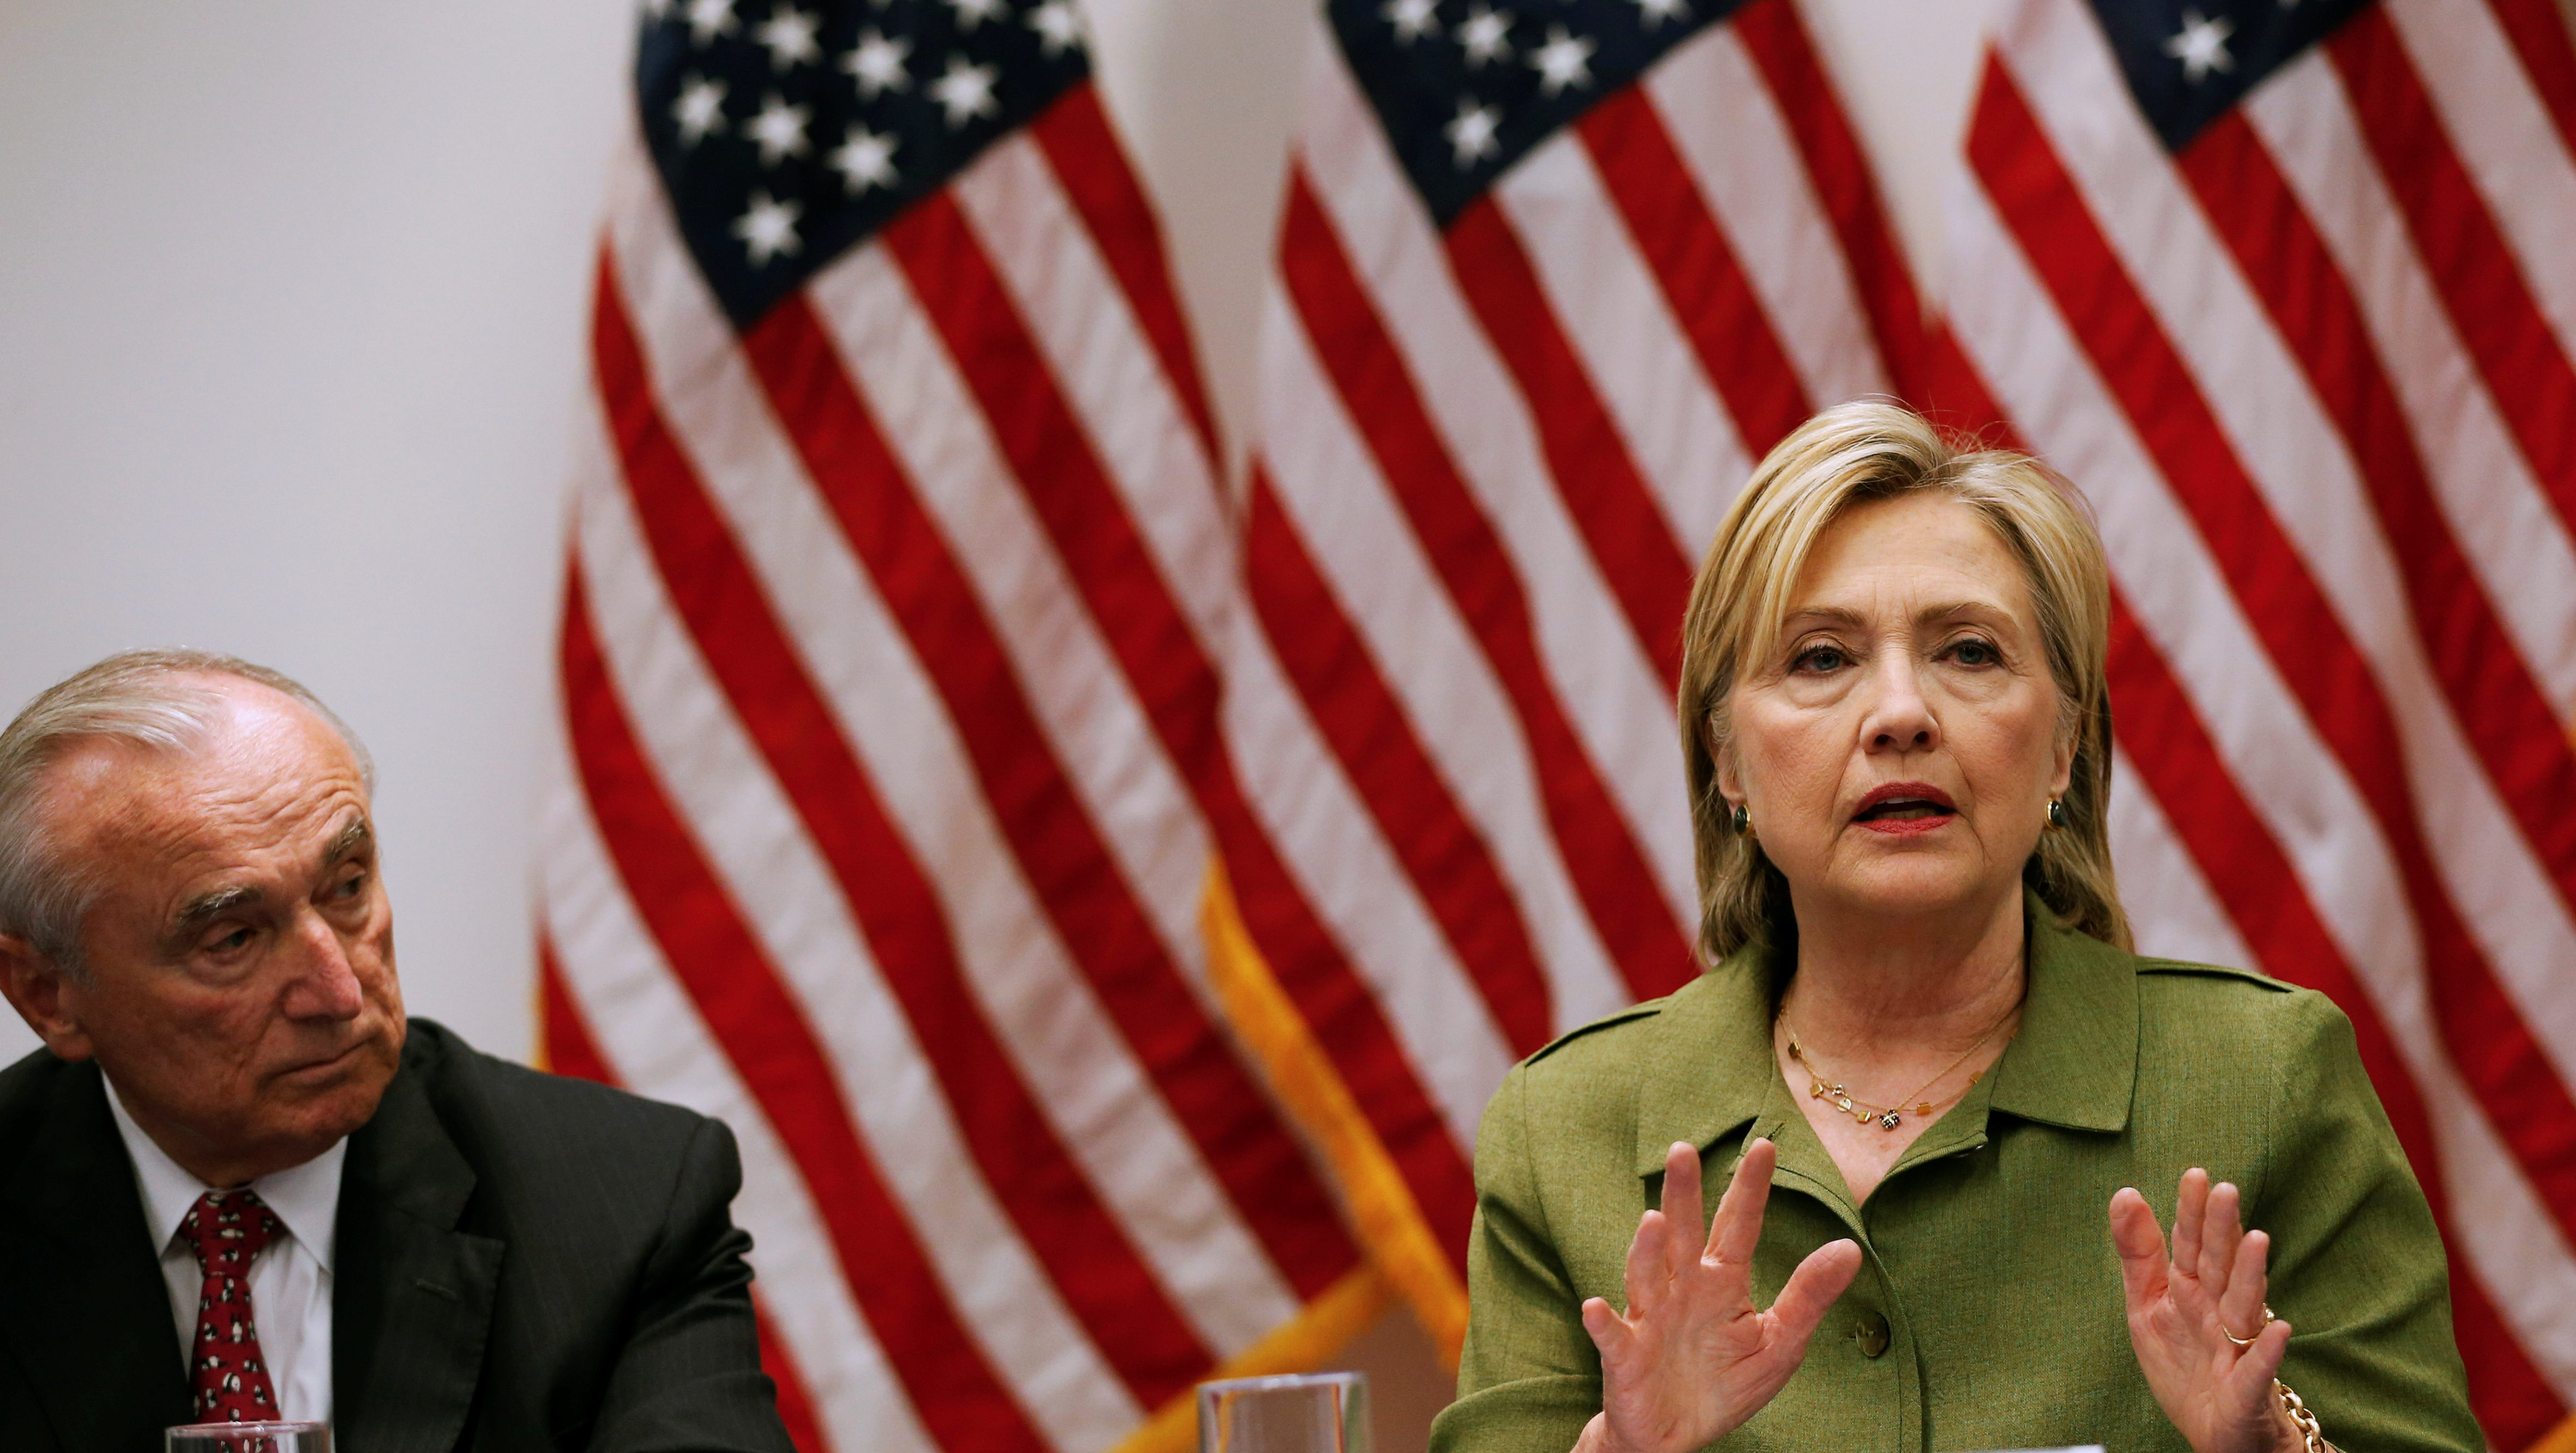 U.S. Democratic presidential nominee Hillary Clinton delivers remarks at a gathering of law enforcement leaders including New York Police Commissioner Bratton at John Jay College of Criminal Justice in New York